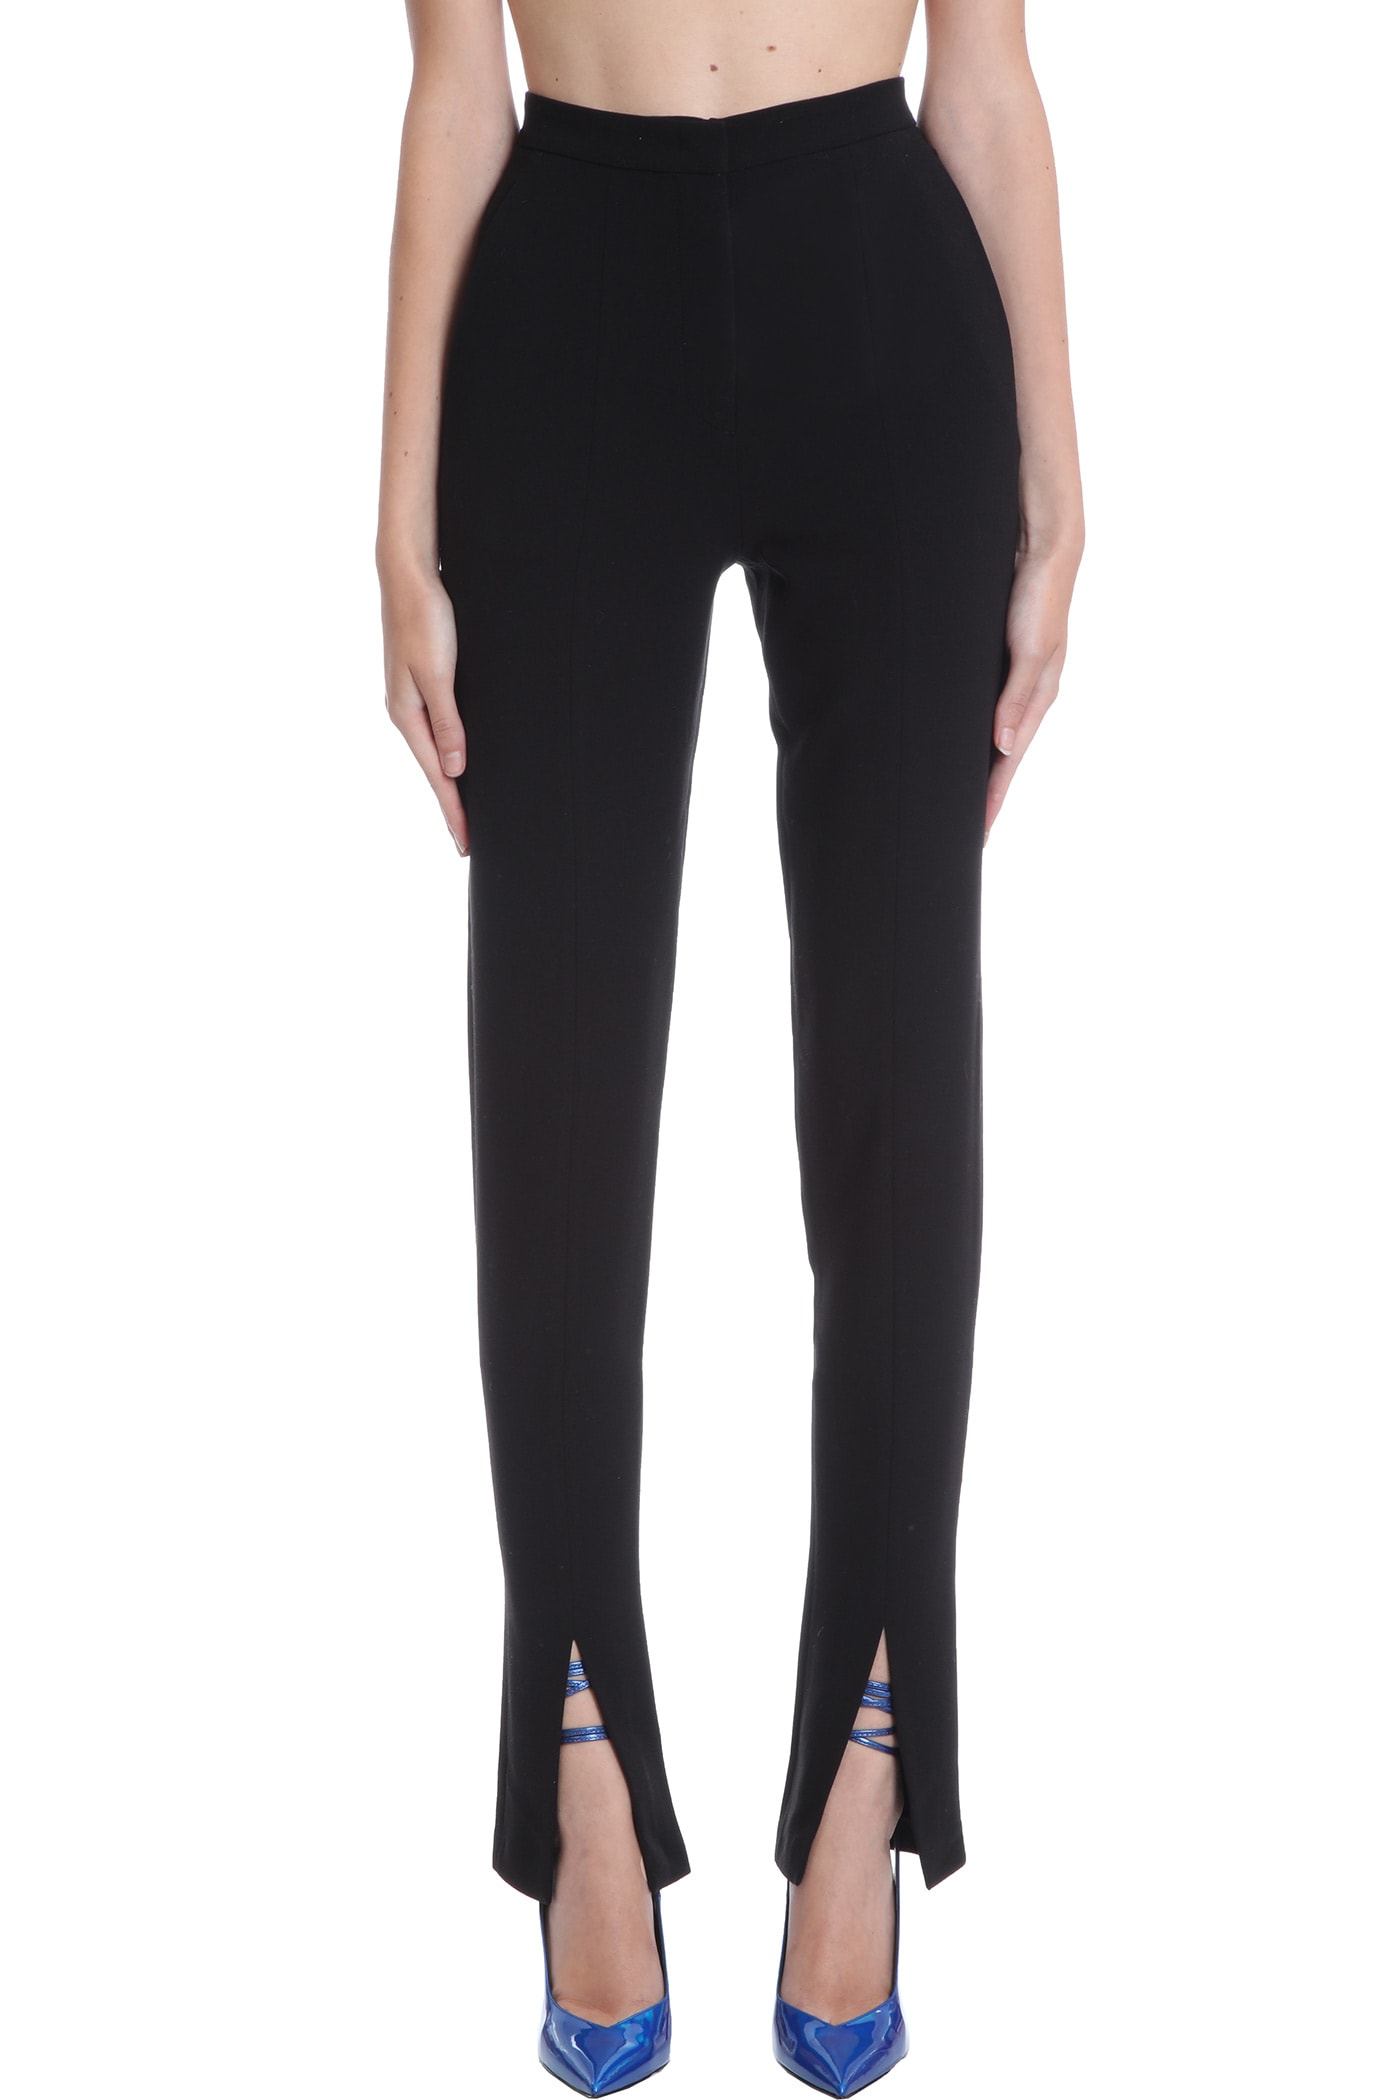 Helena Splitted Pants In Black Polyester